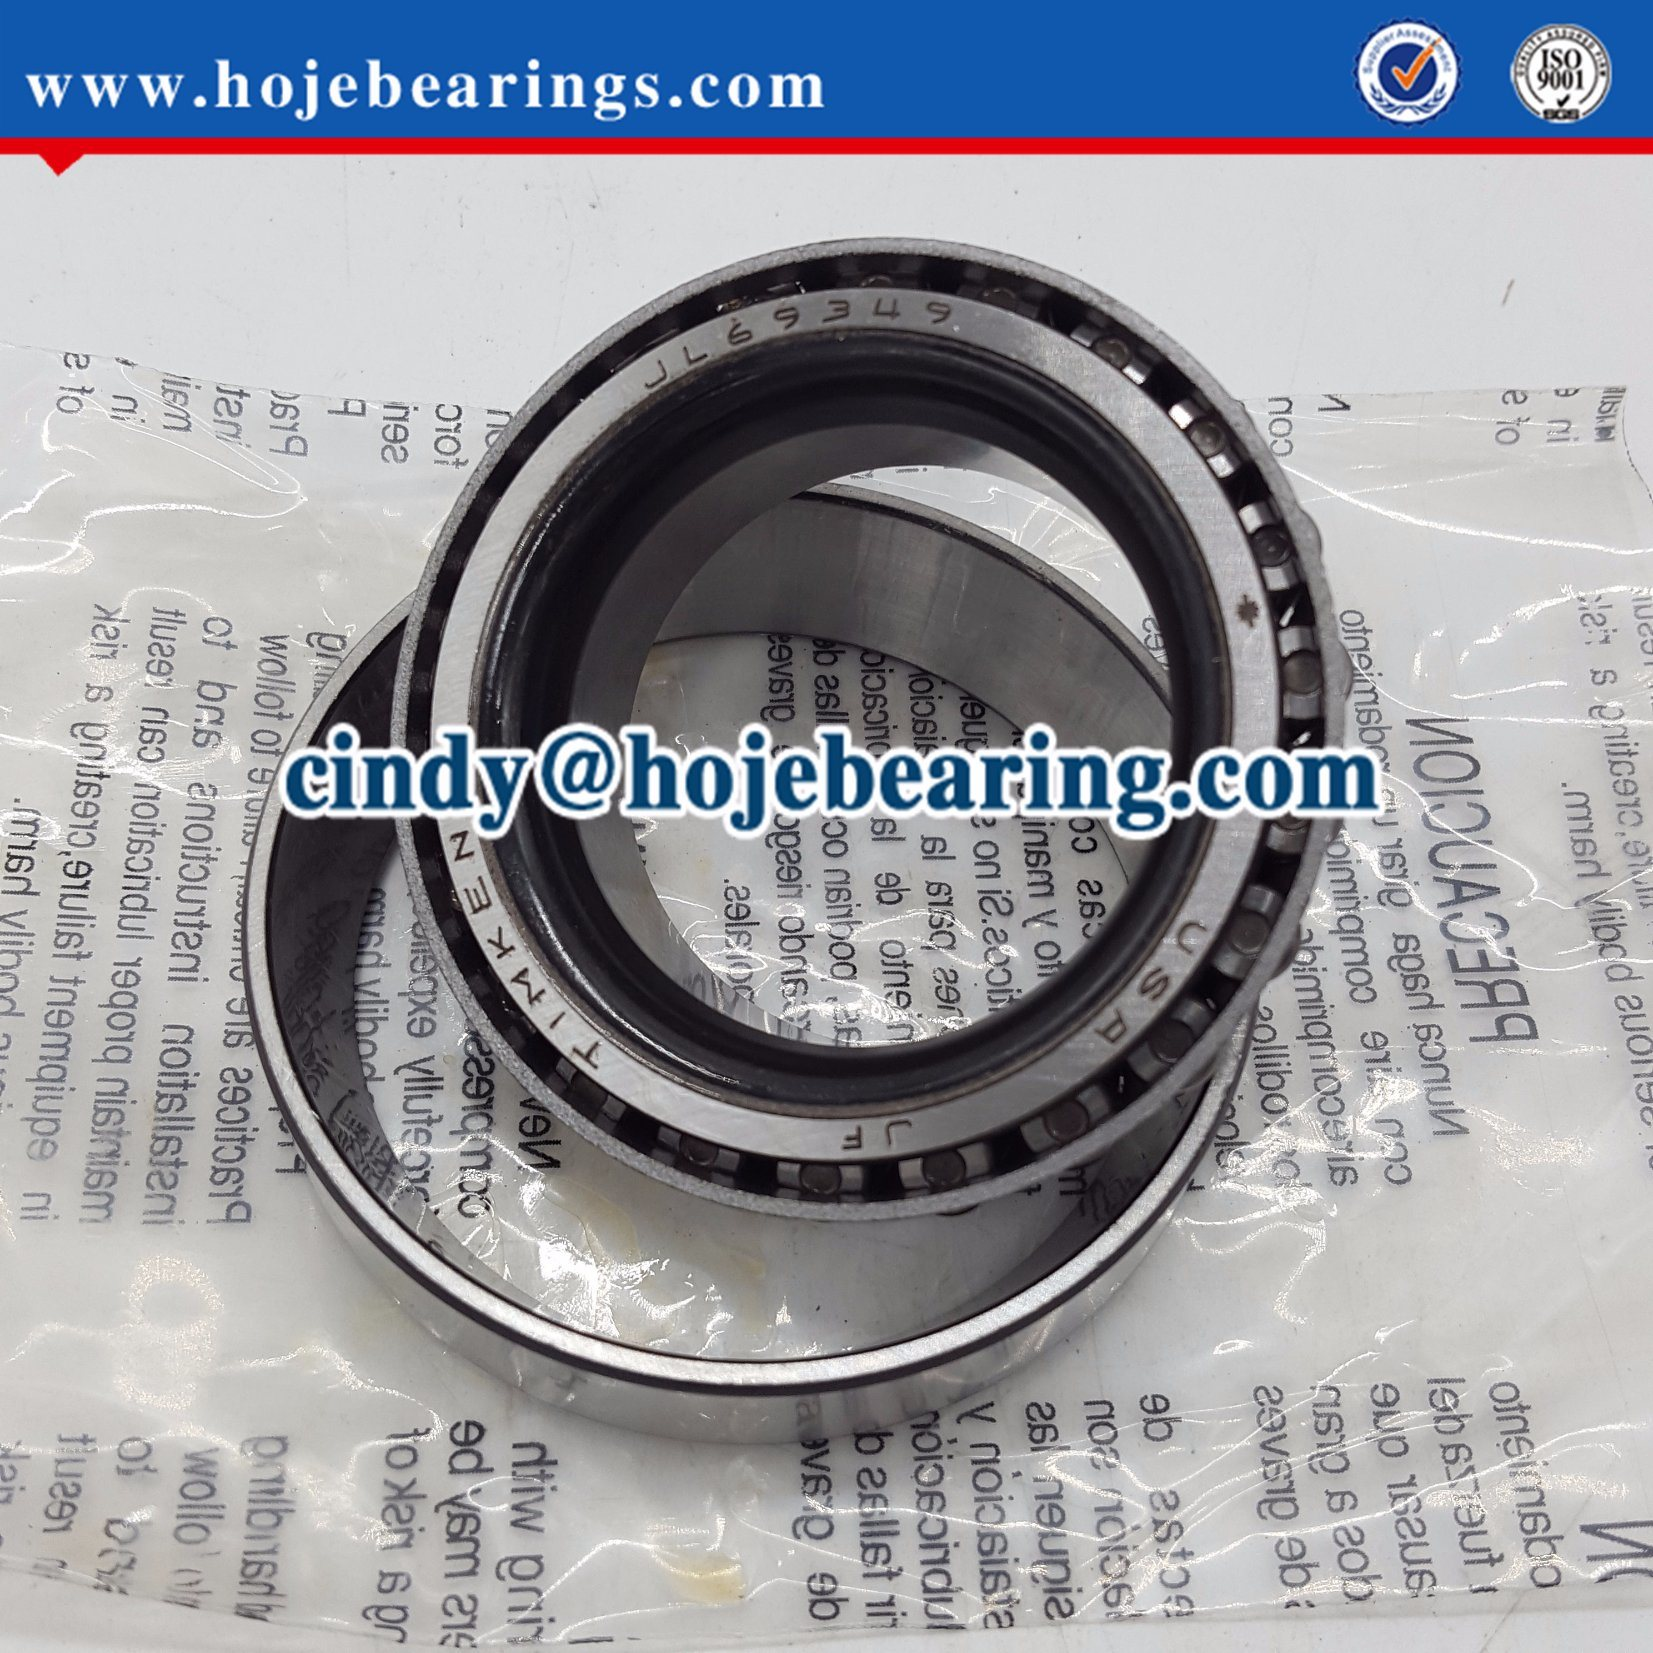 Jl69349/Jl69310 Taper Roller Bearing Set Taper Wheel Bearing